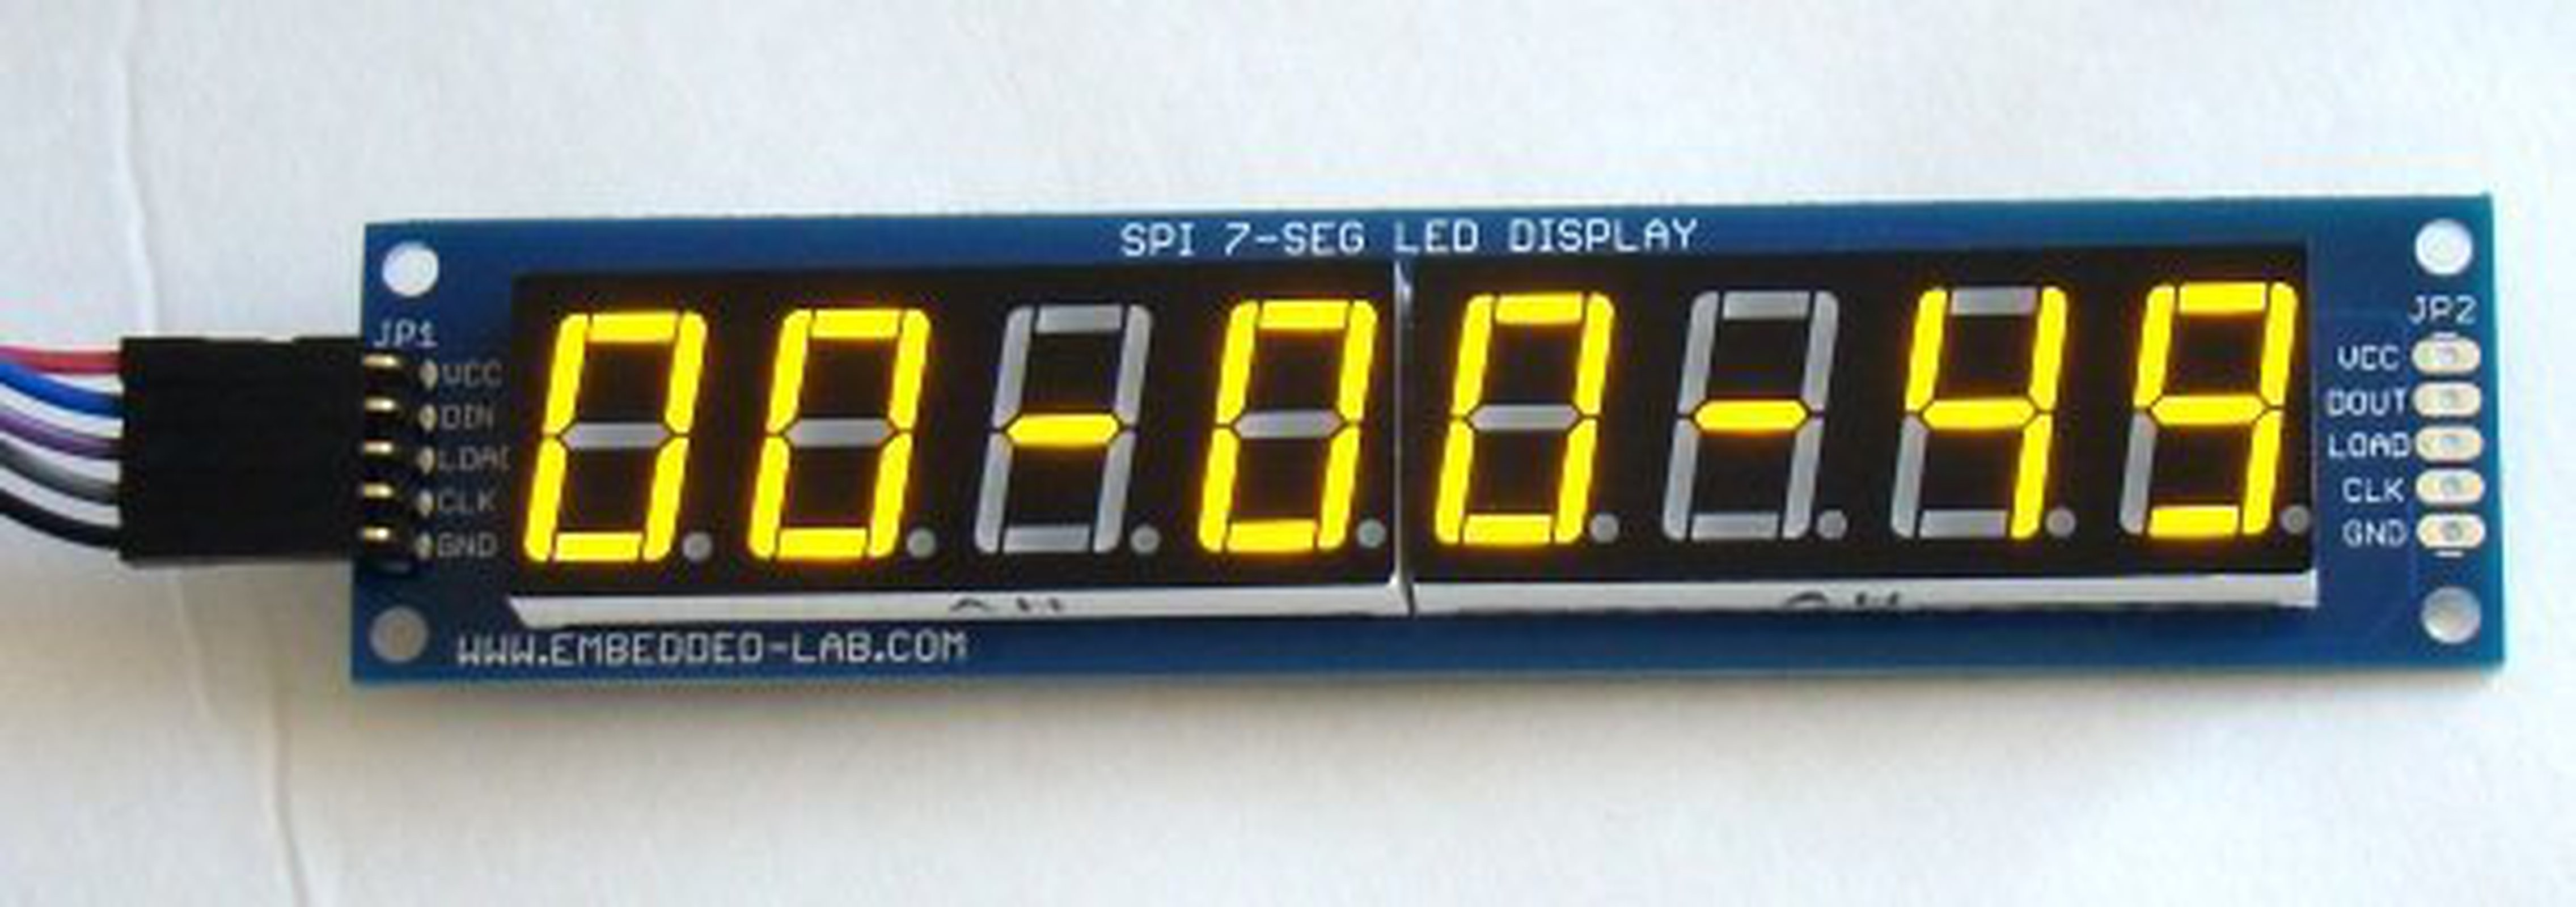 PCB For Serial 7 Segment LED Display From Embedded Lab On